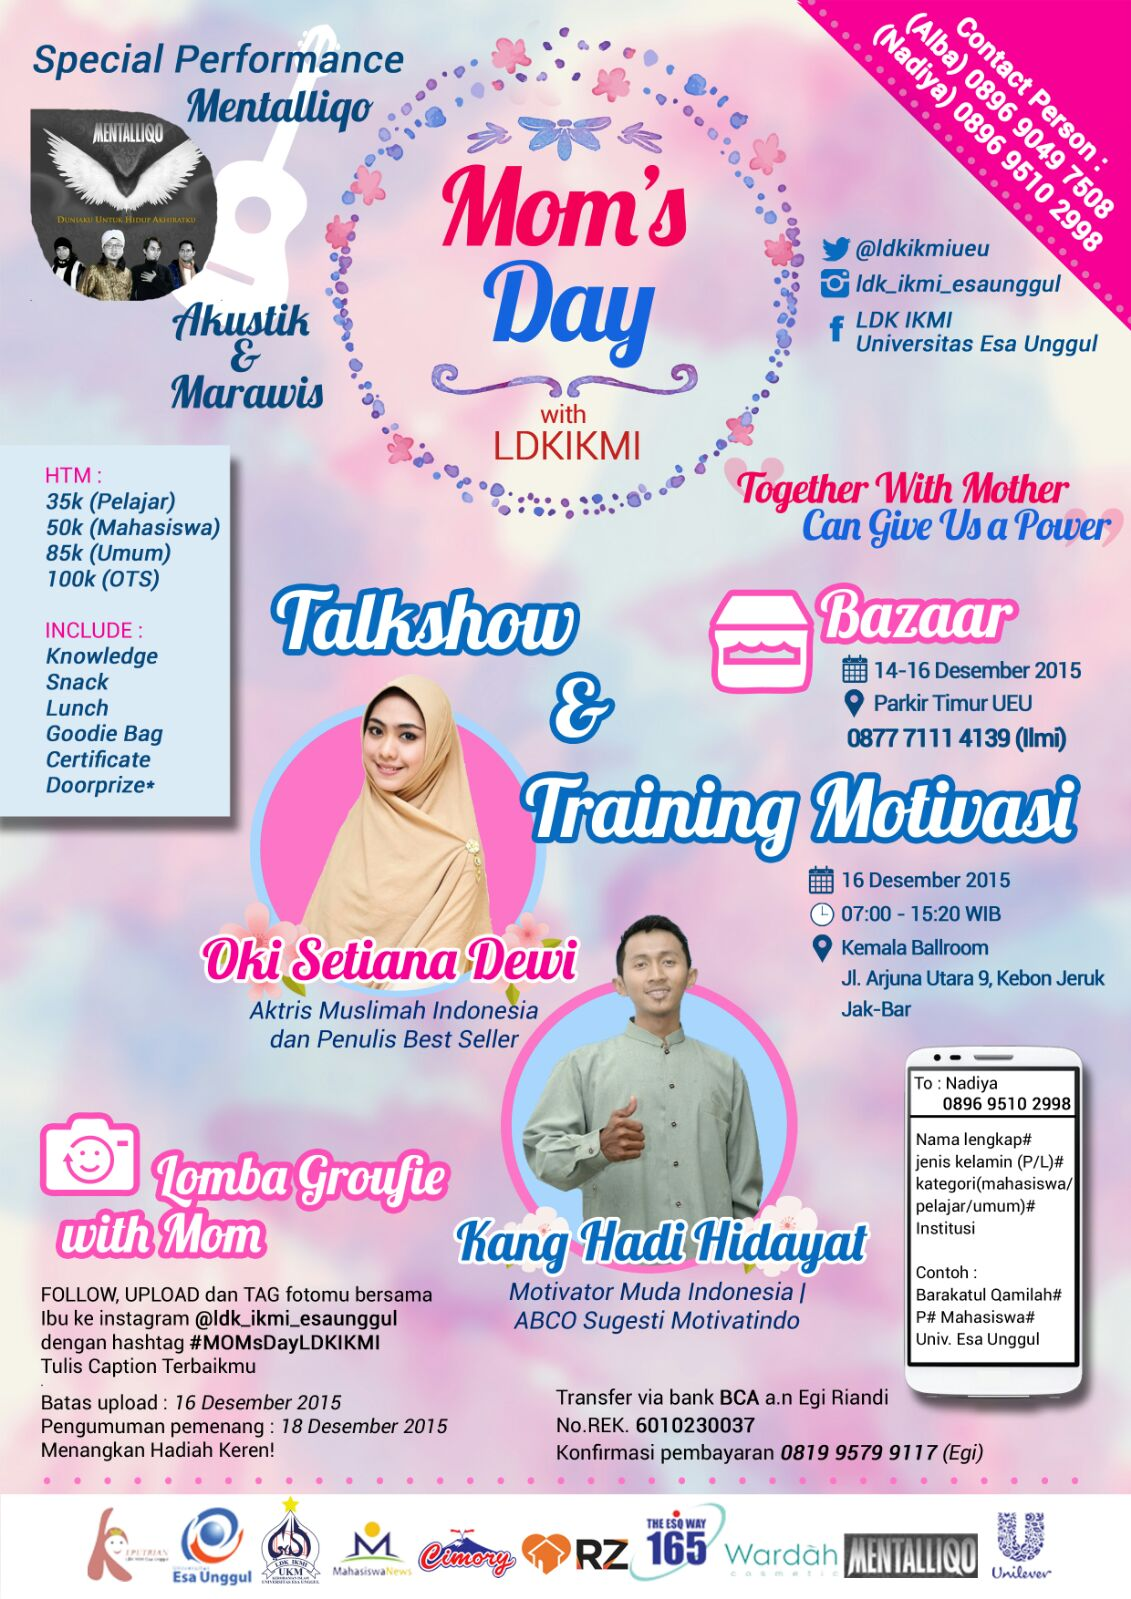 """Talkshow dan Seminar Moms Day """"Together with Mother can Give Us a Power"""" LDK LKMI Universitas Esa Unggul"""